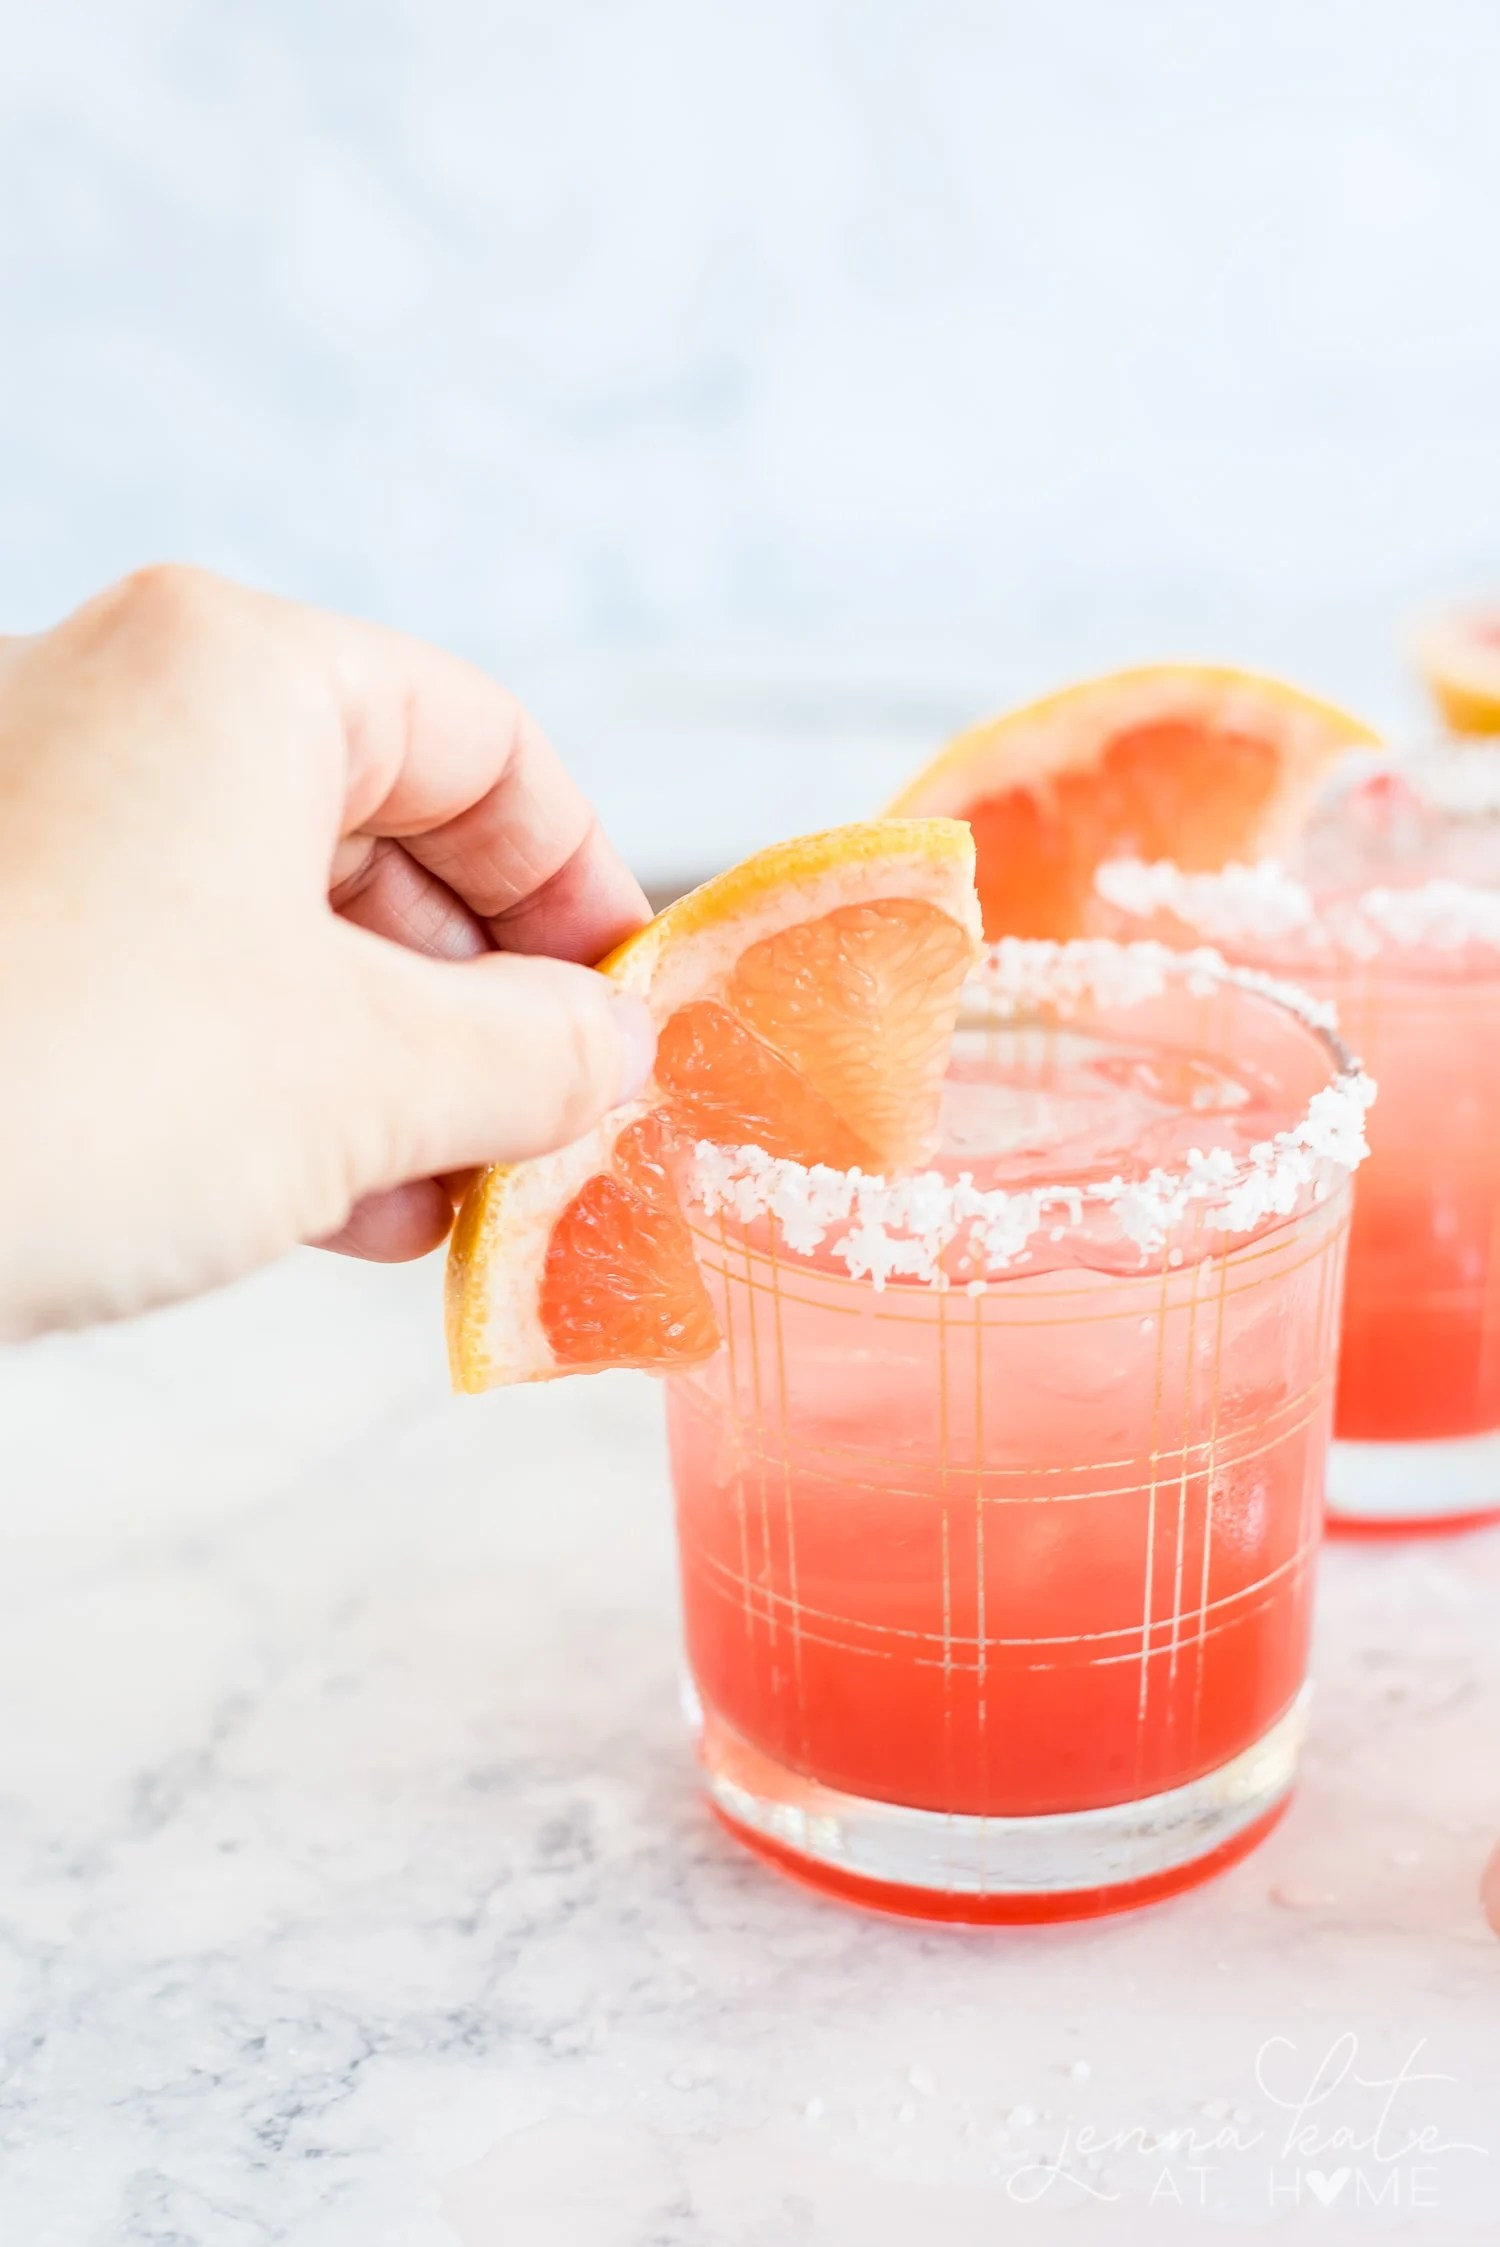 Garnishing the glass with a wedge of grapefruit